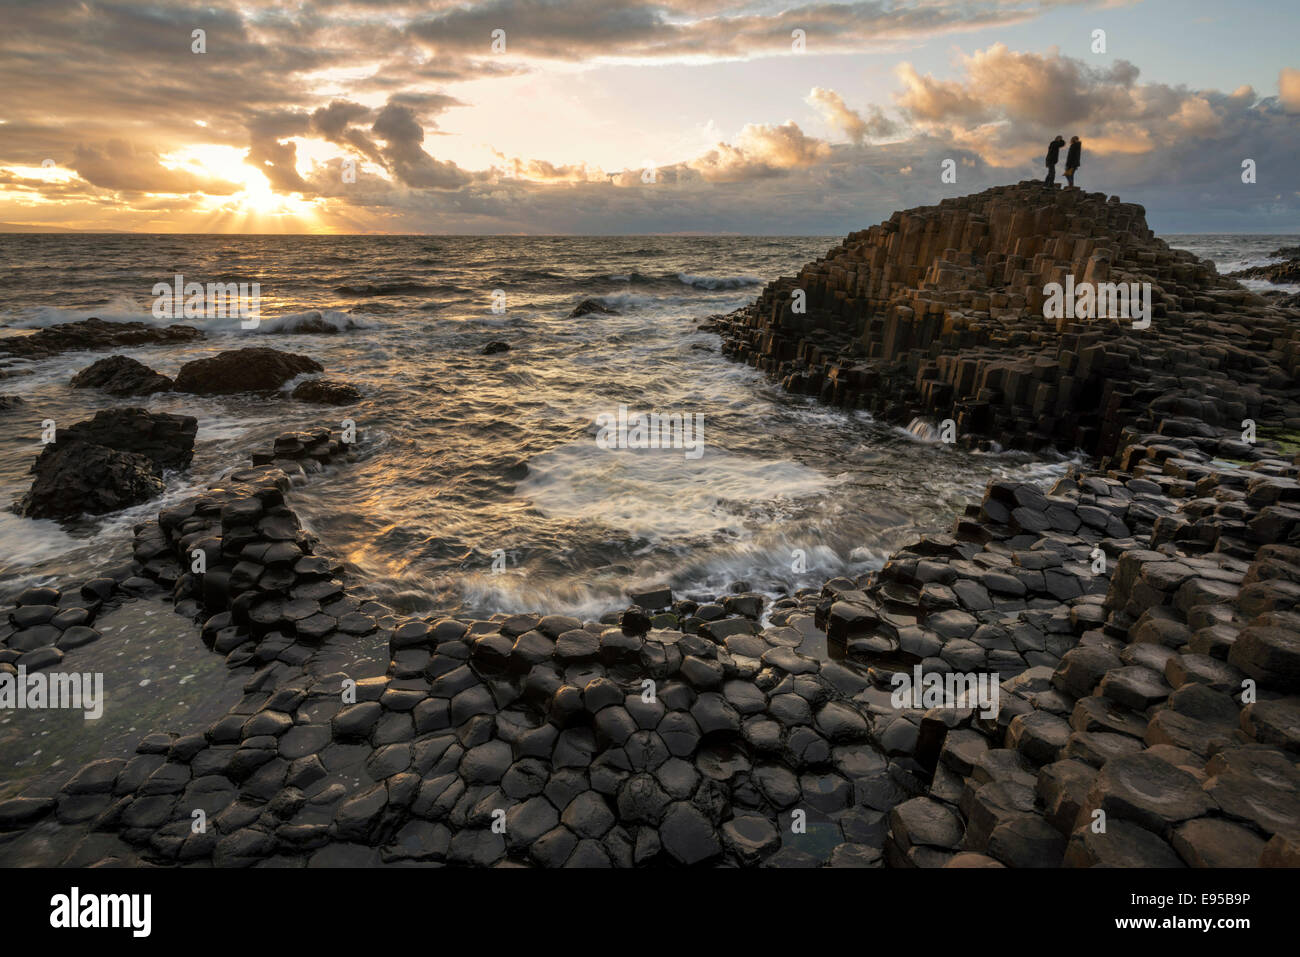 The Giants Causeway, Co, Antrim, Northern Ireland - Stock Image